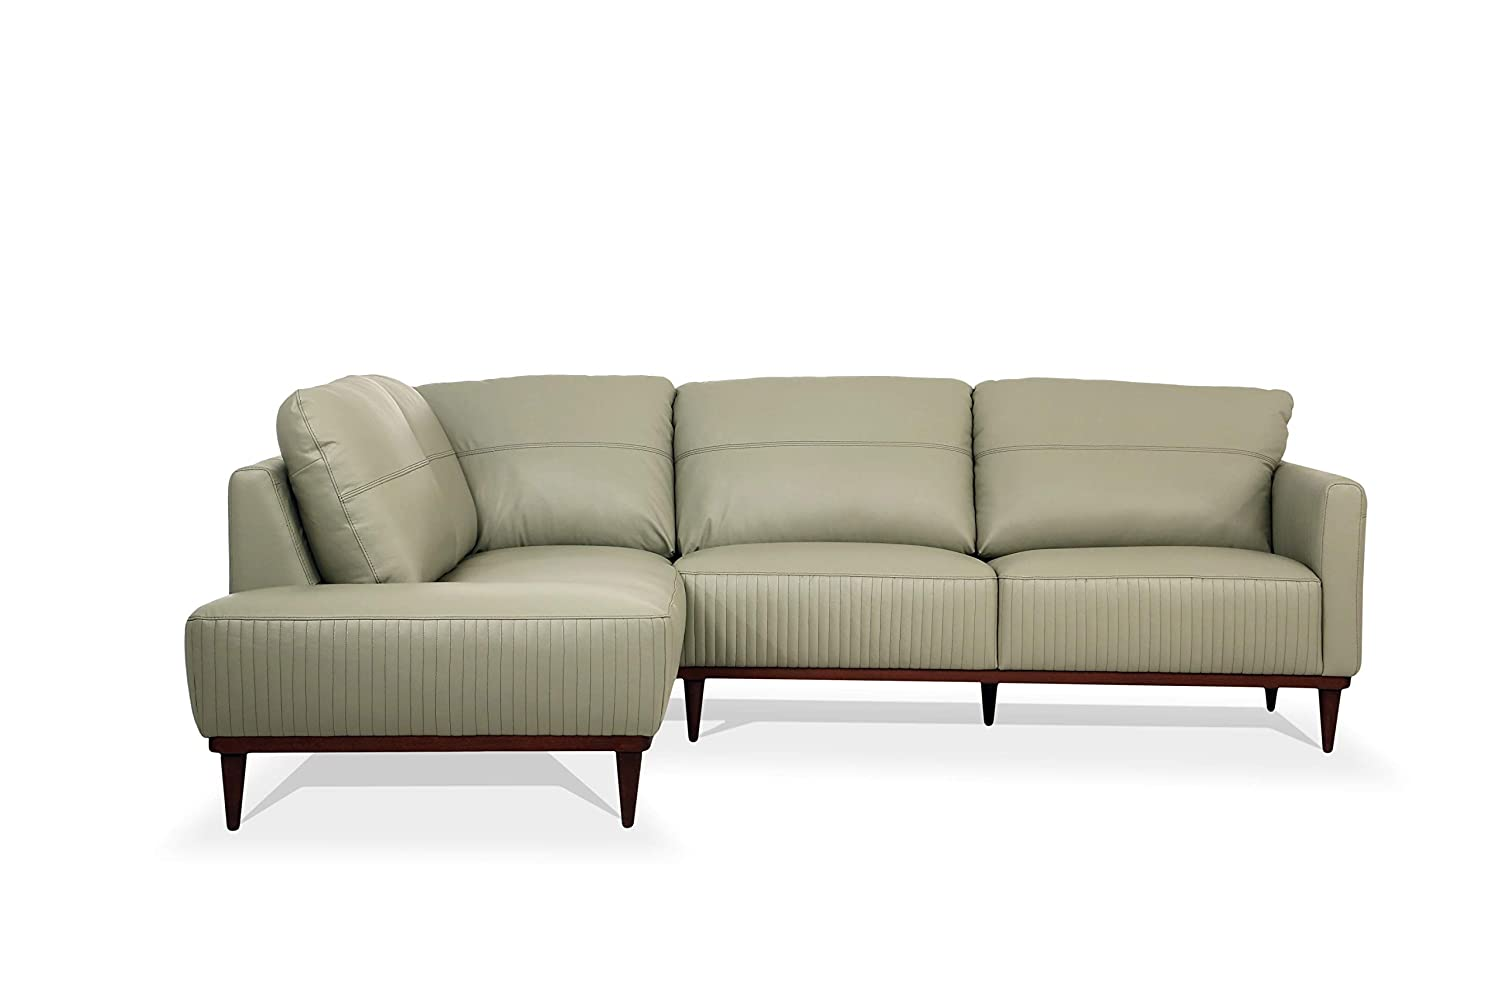 Amazon.com: ACME Furniture 54995 Tampa Sectional Sofa, Airy ...